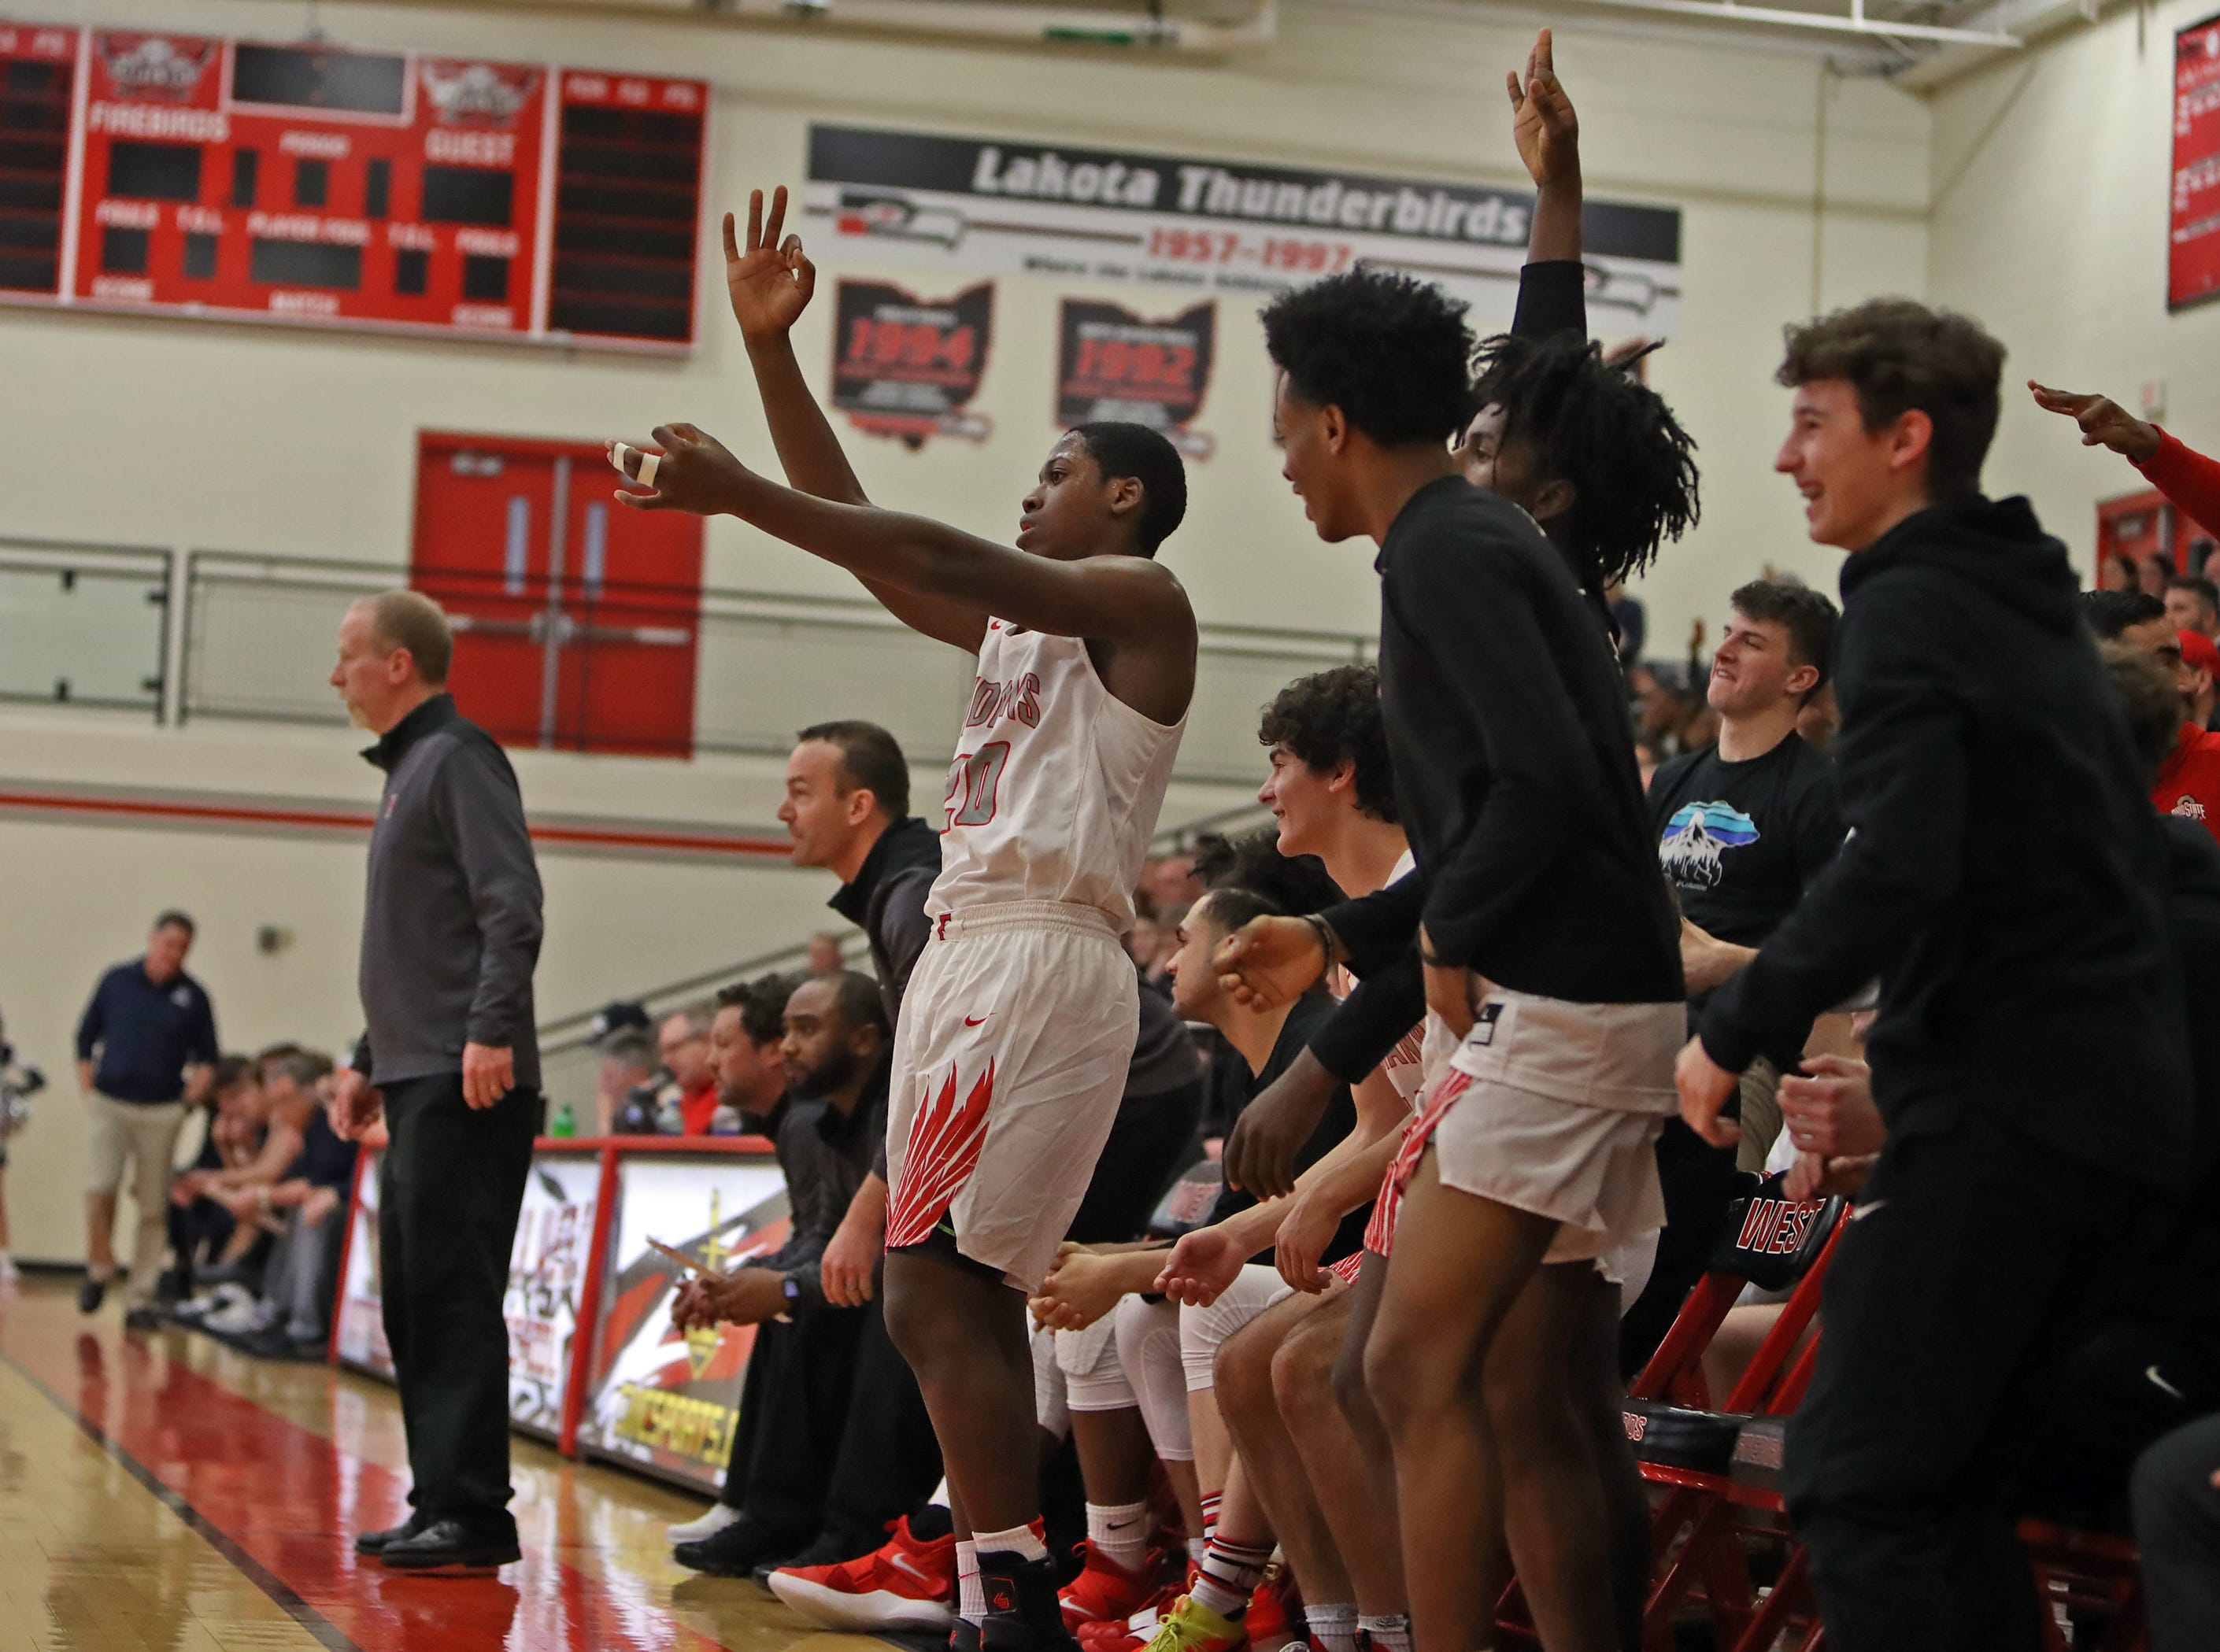 Fairfield's bench erupts after a three-point goal Feb. 23 against West Clermont.